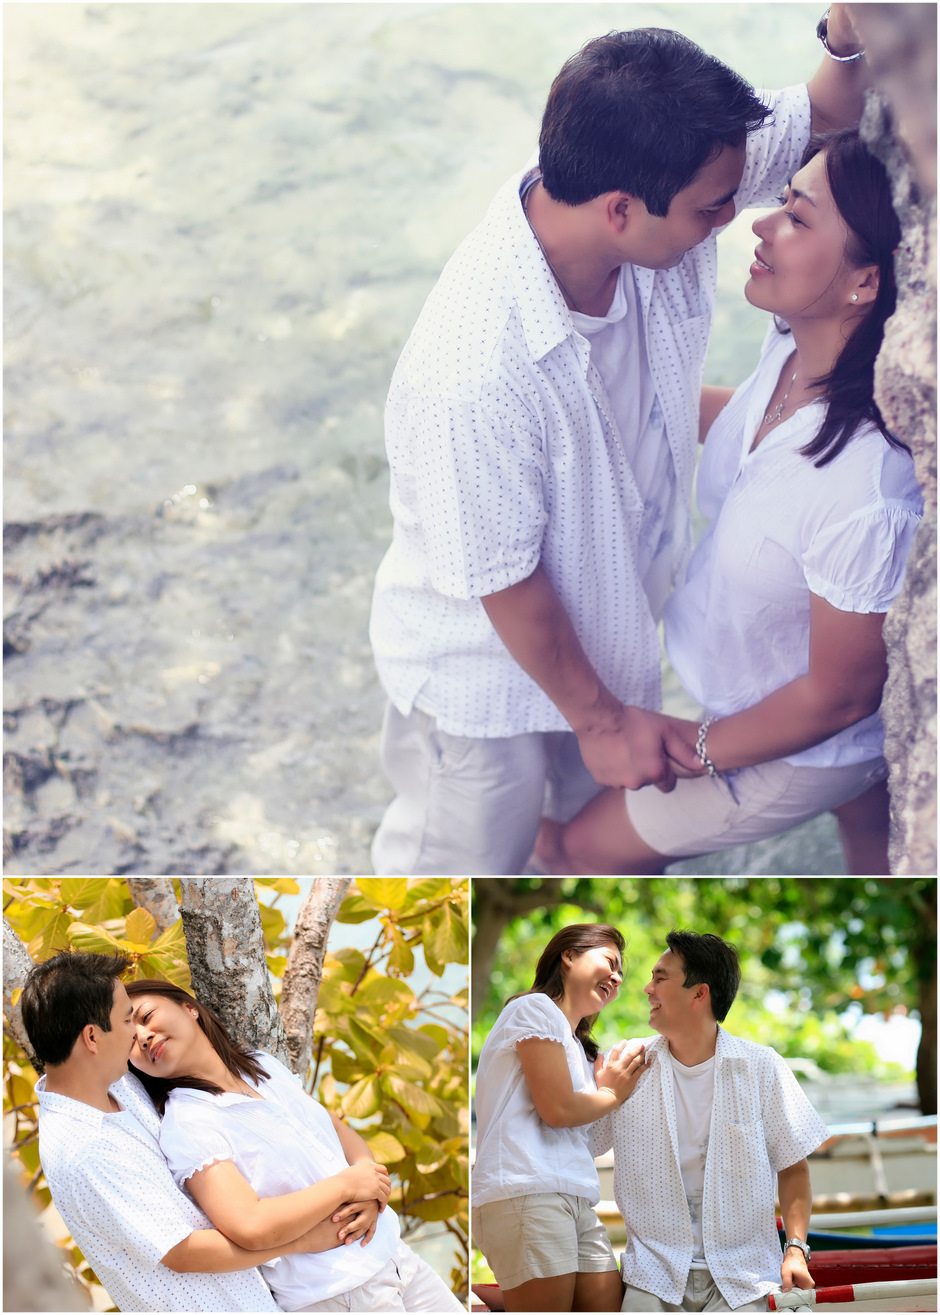 engagement photography, wedding photography, cebu wedding photography